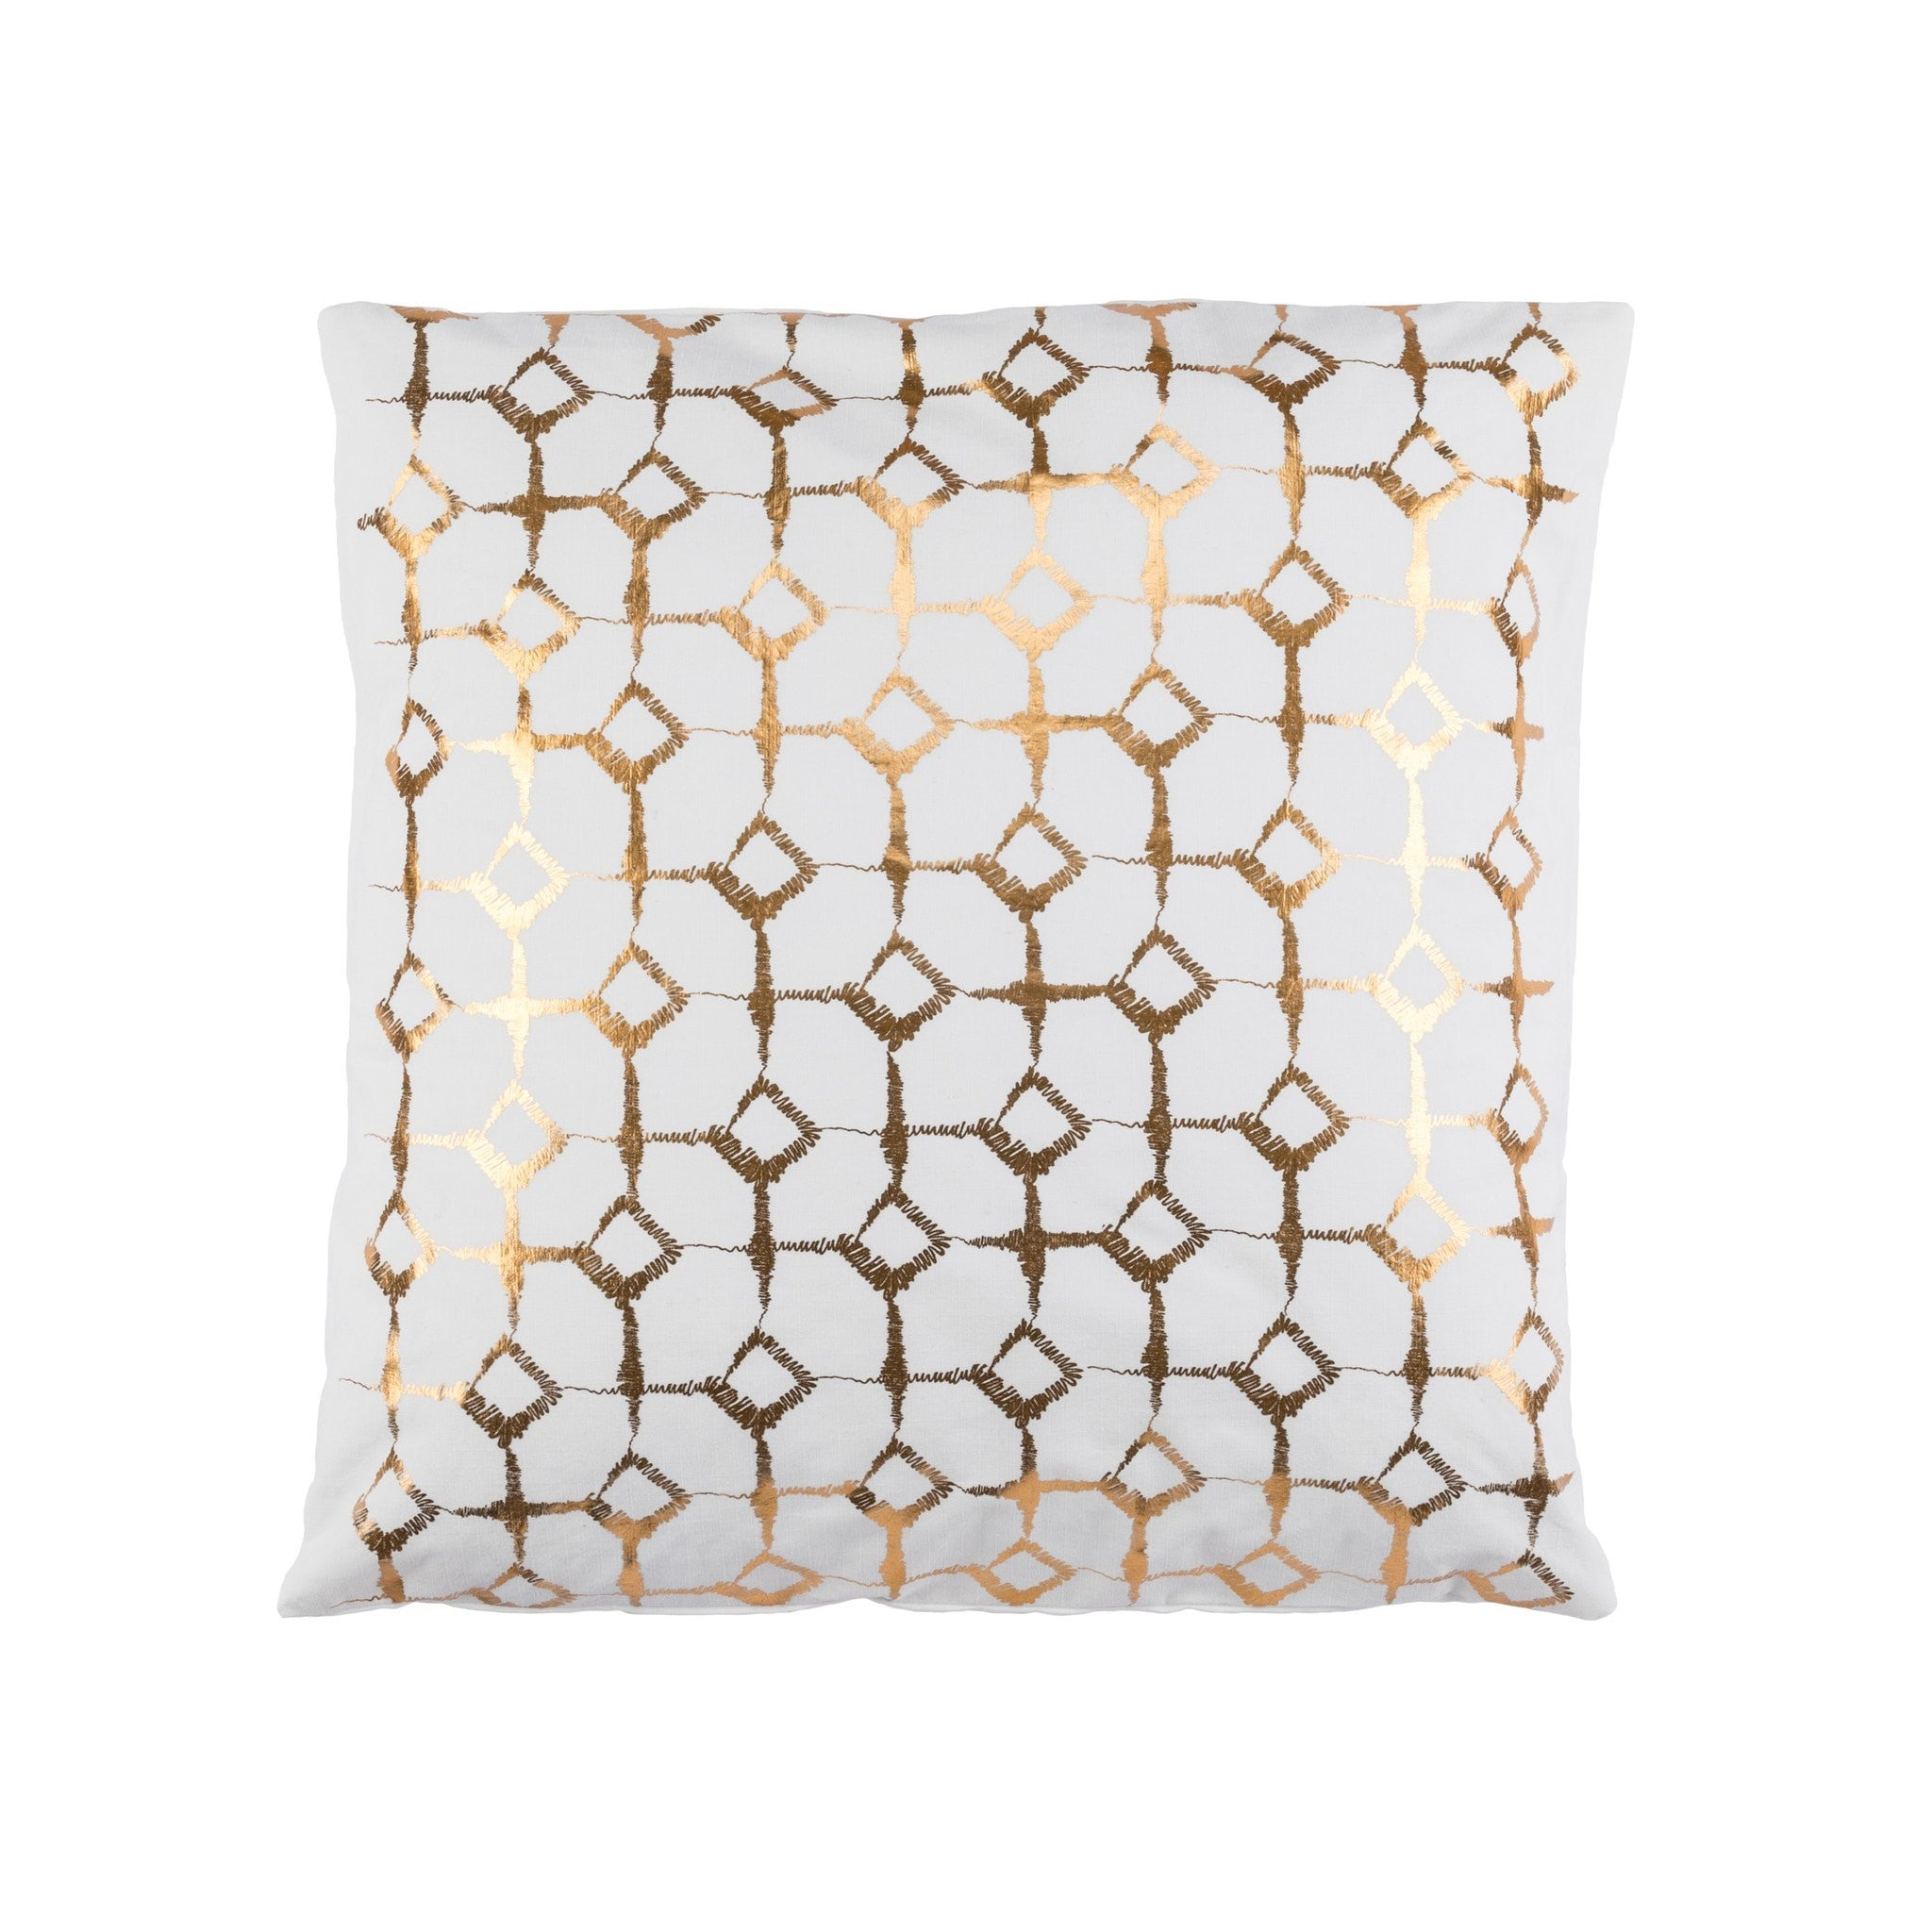 Signature Print Ivory Cushion Covers